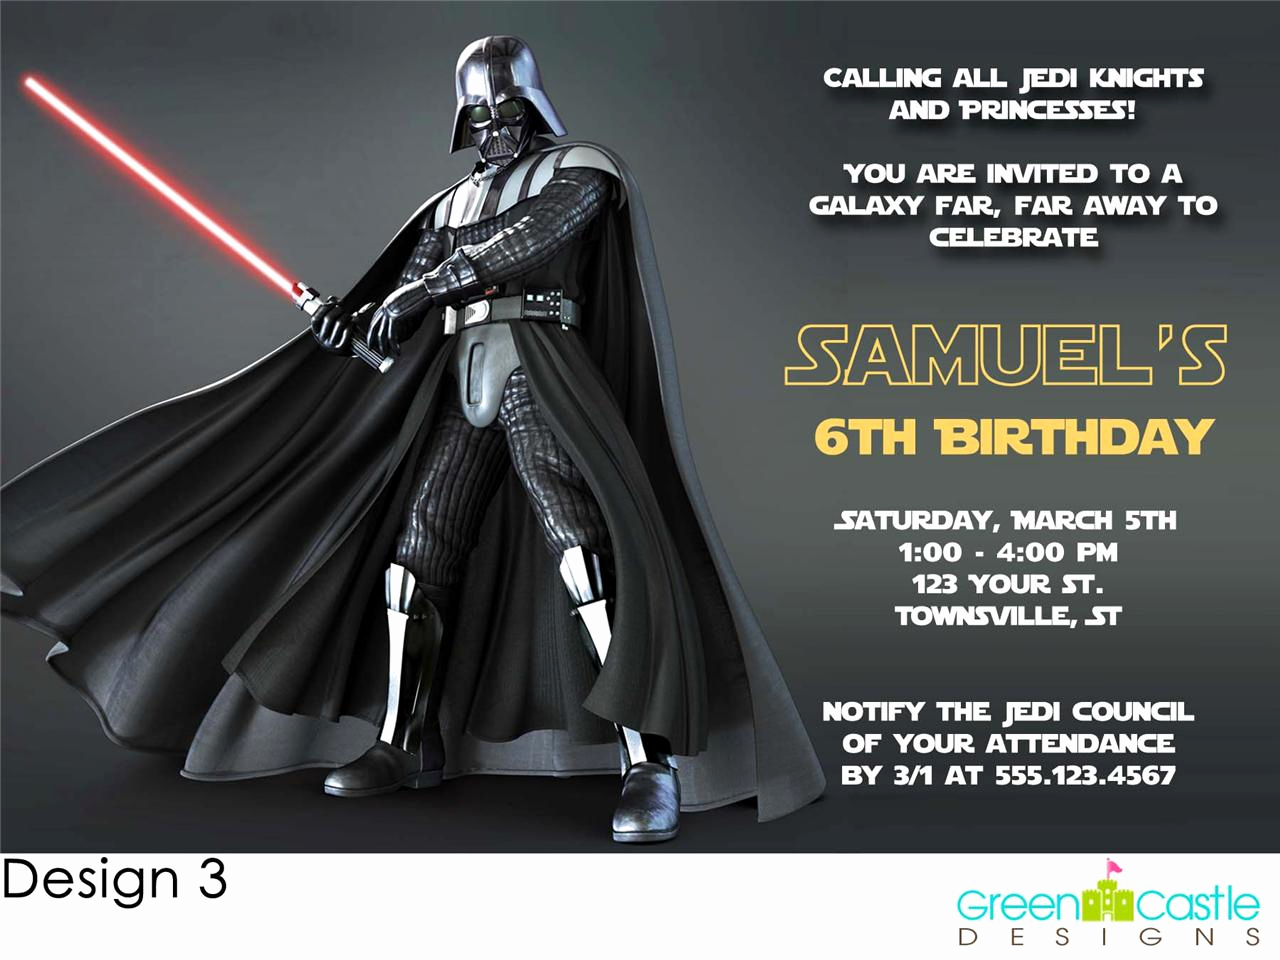 Star Wars Invitation Template Best Of 20 Star Wars Darth Vader Birthday Party Invitations